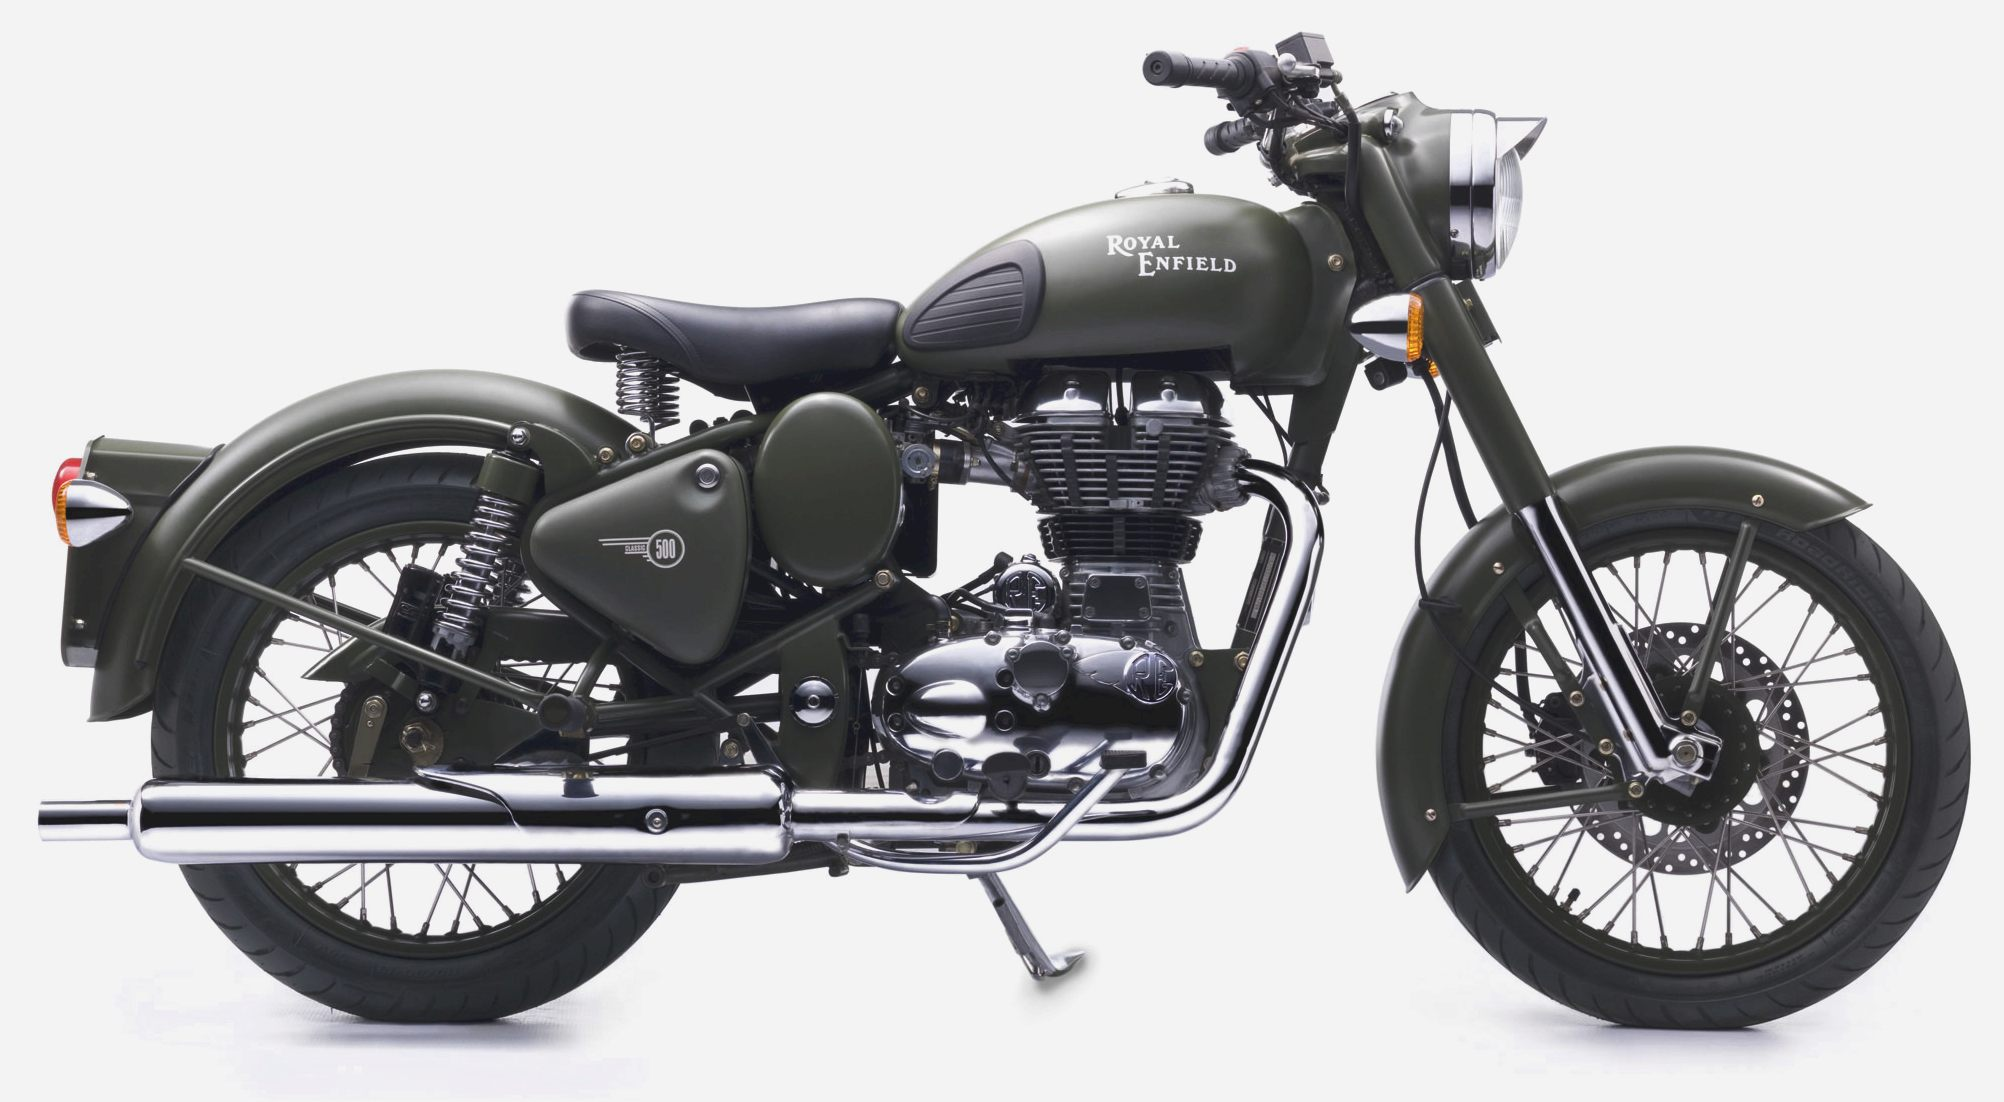 Royal Enfield Bullet 500 Army 2007 images #127489